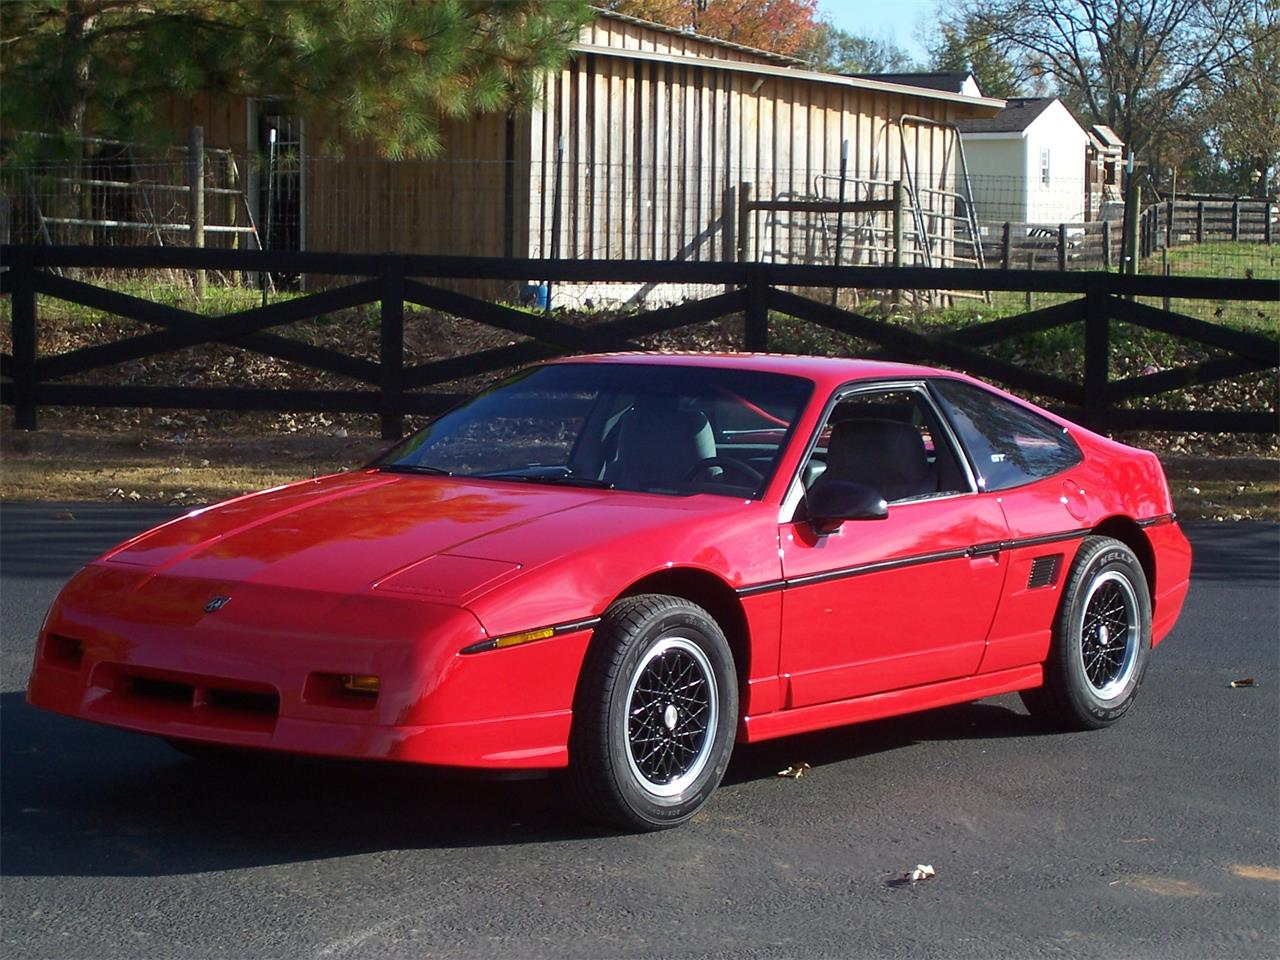 1988 Pontiac Fiero (CC-1043443) for sale in Alpharetta, Georgia